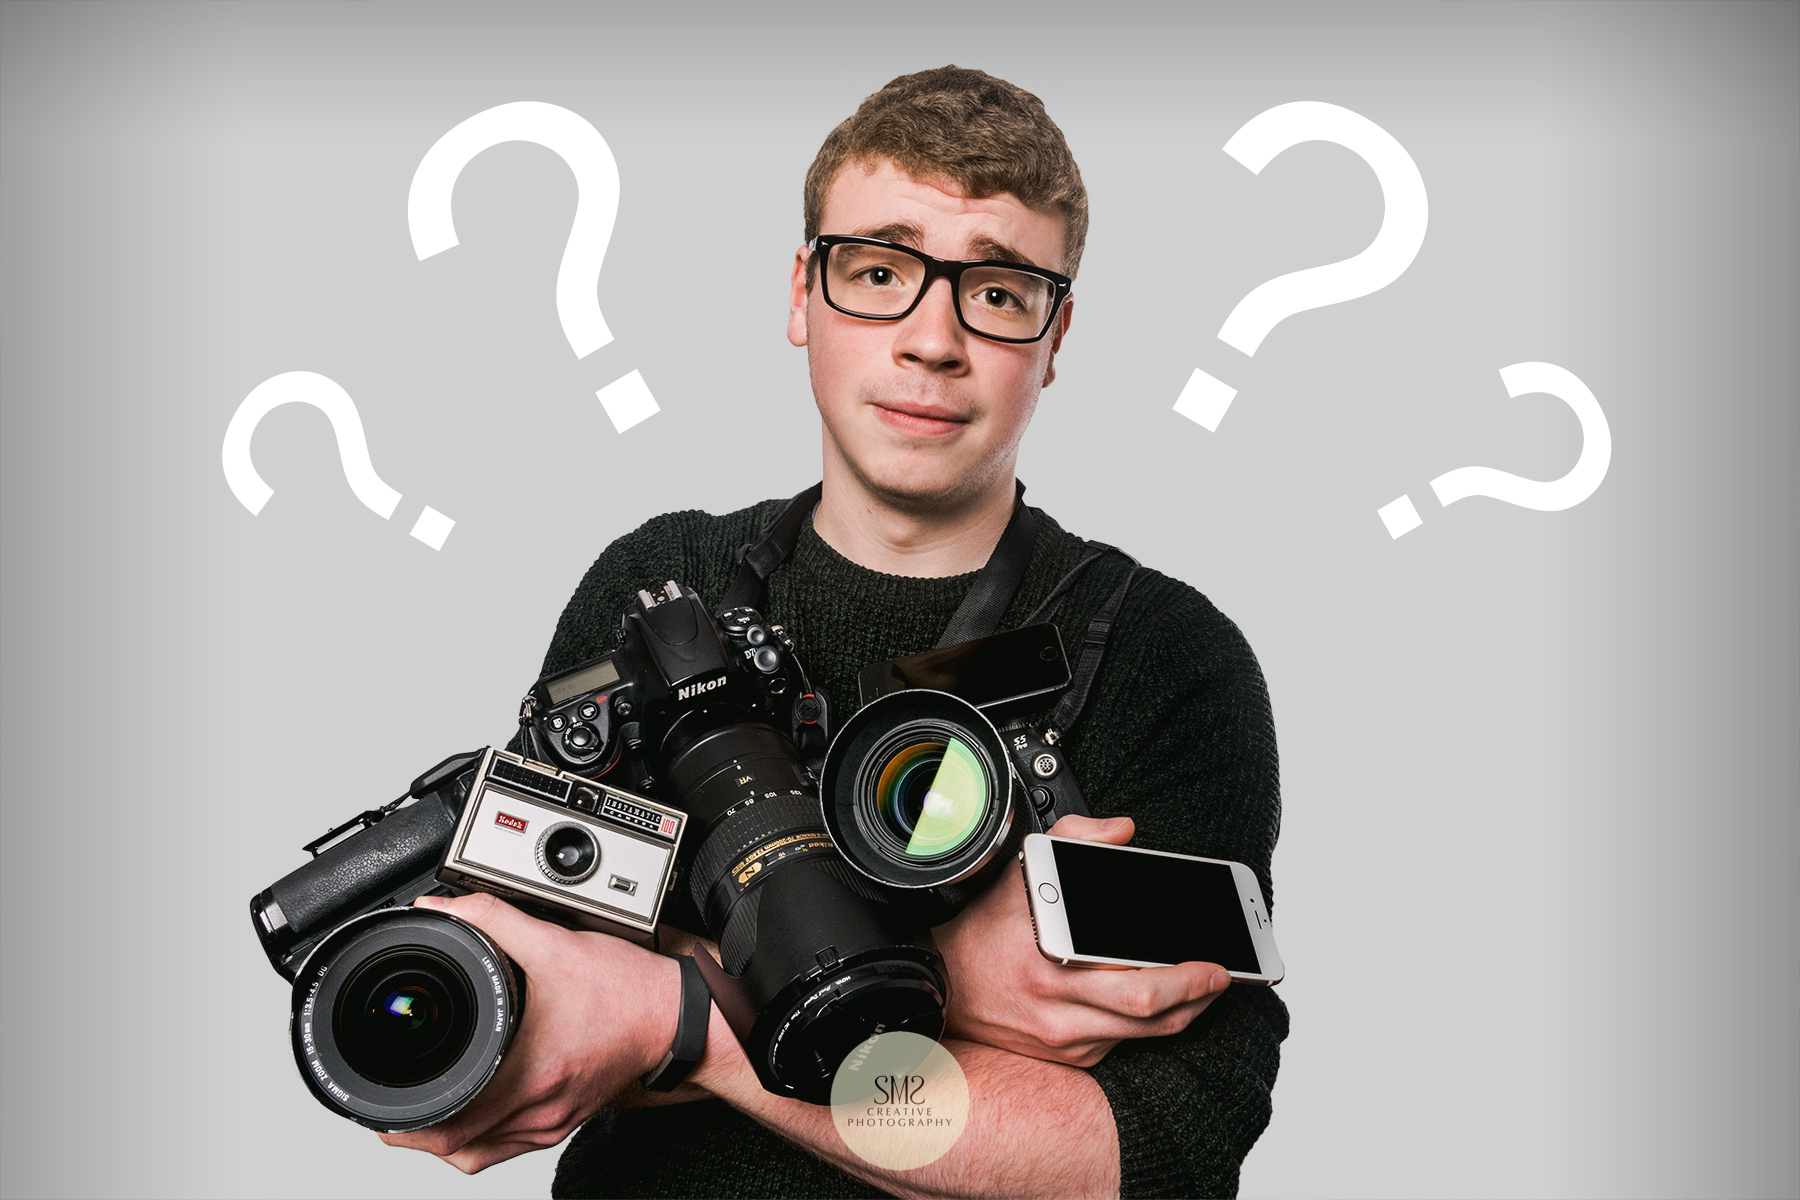 Time to say goodbye to feeling confused about your camera!